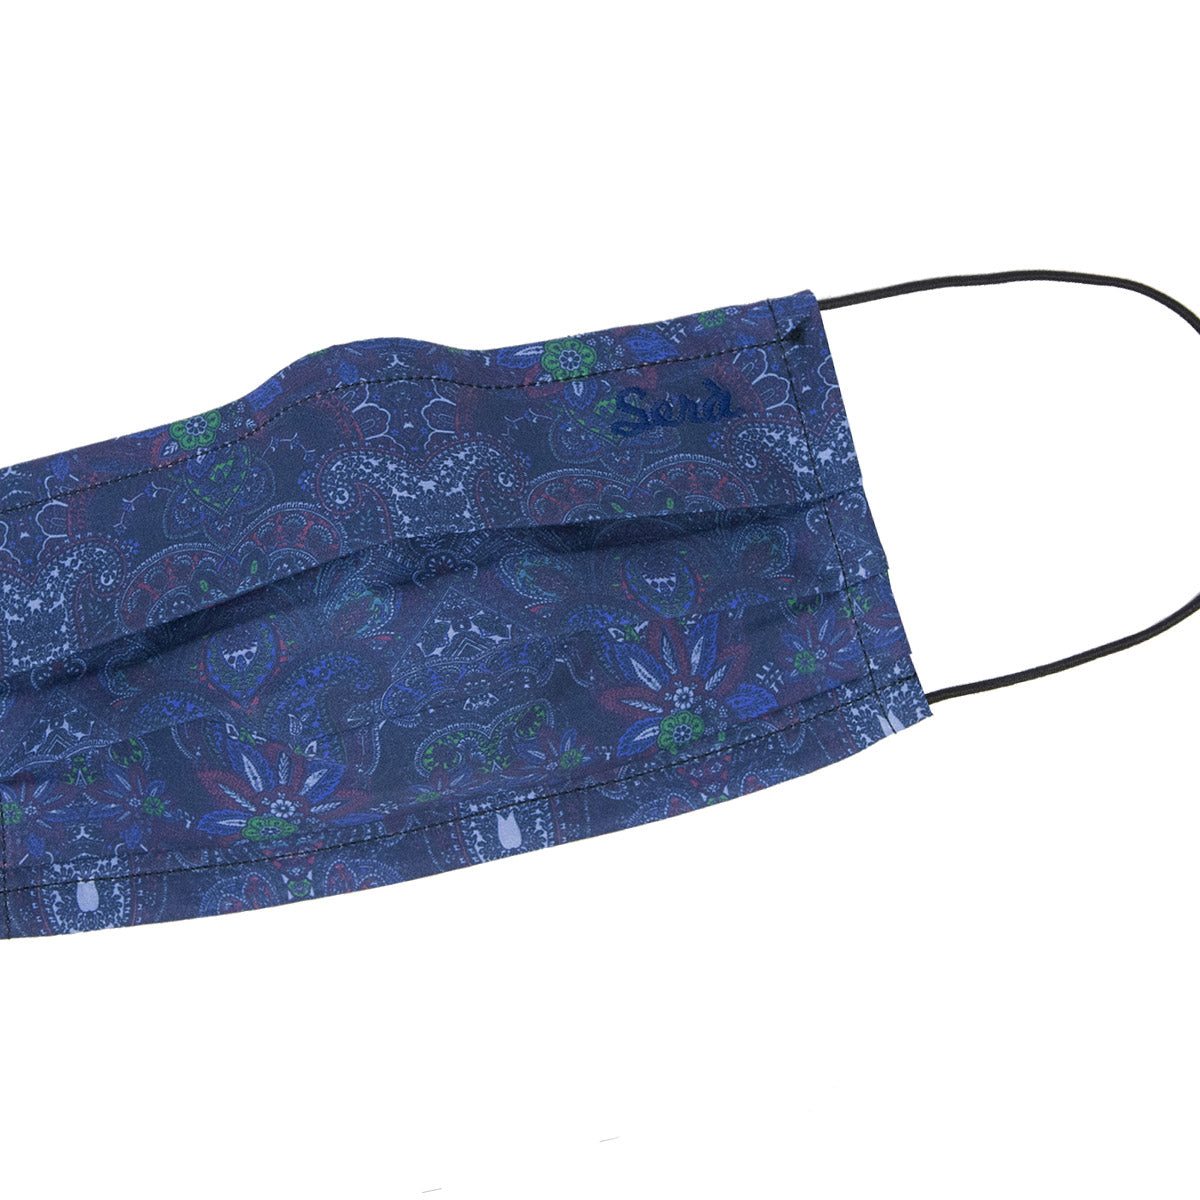 serà fine silk - Navy Blue floral paisley cotton face cover